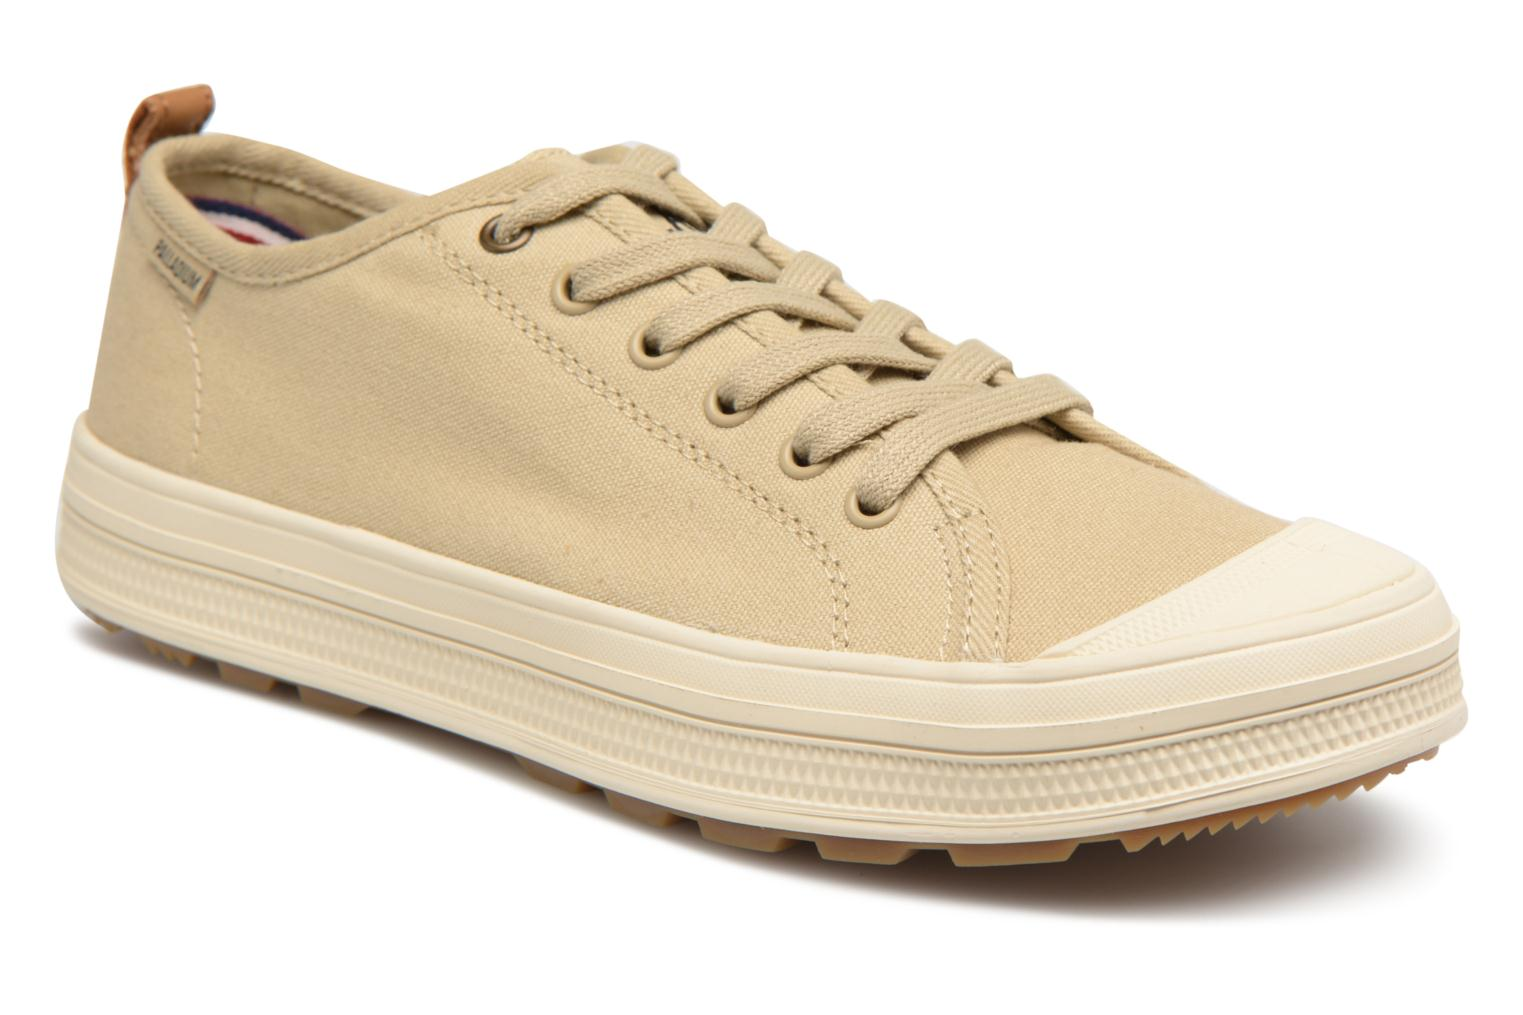 Palladium Chaussures S_U_B LOW CVS